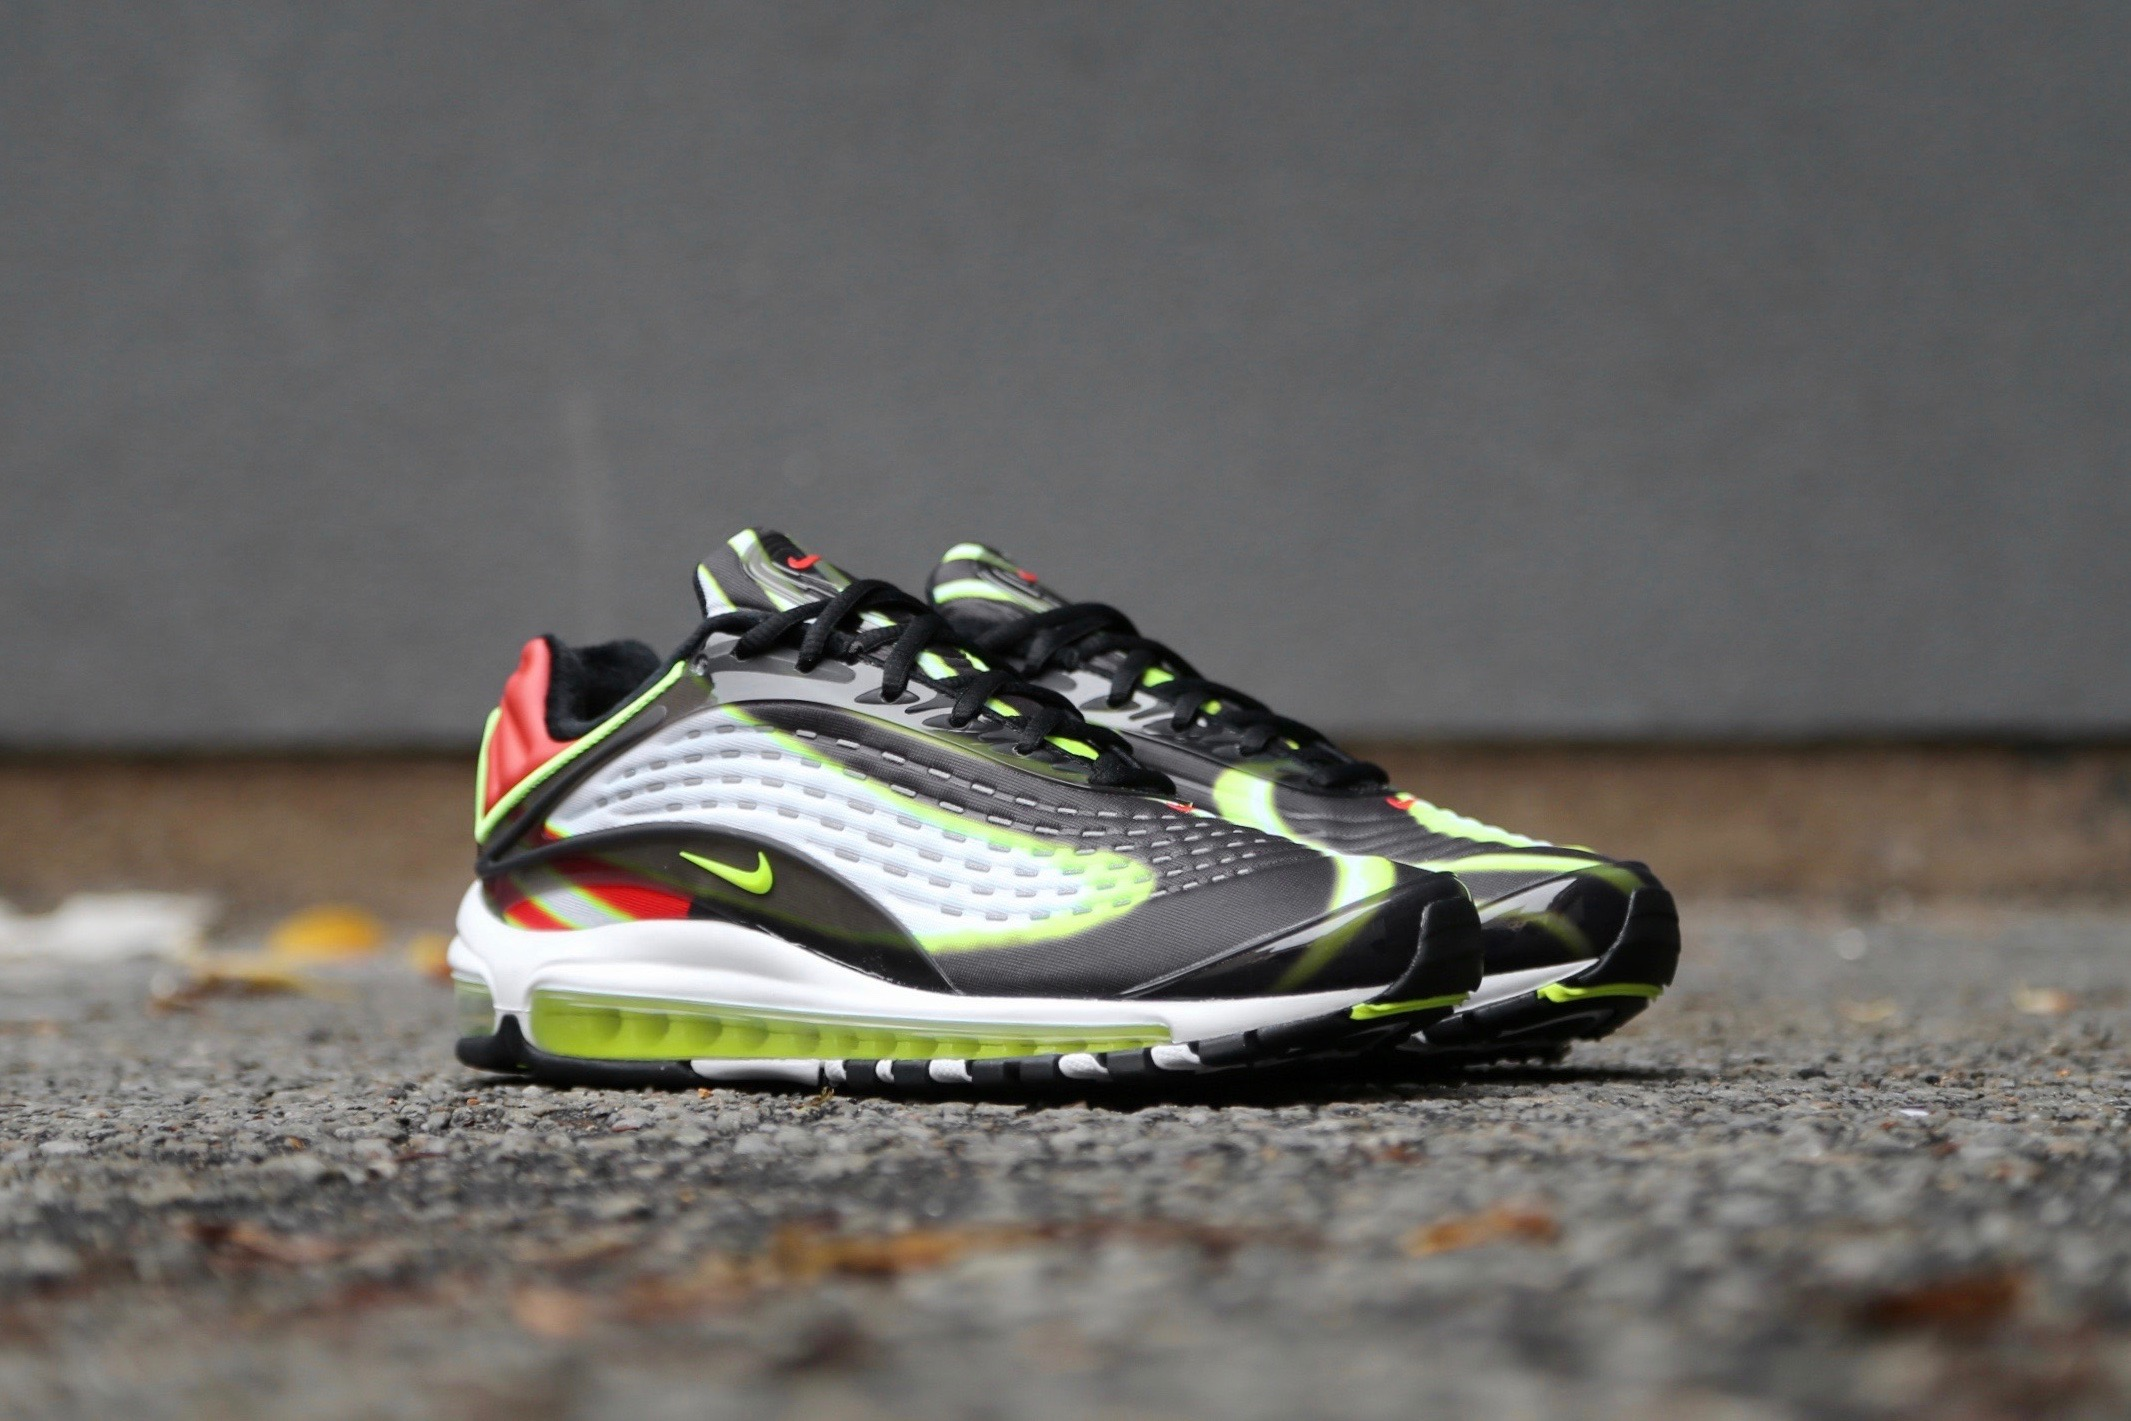 657d4c33fc Nike Air Max Deluxe – Black / Habanero Red / White / Volt – STASP